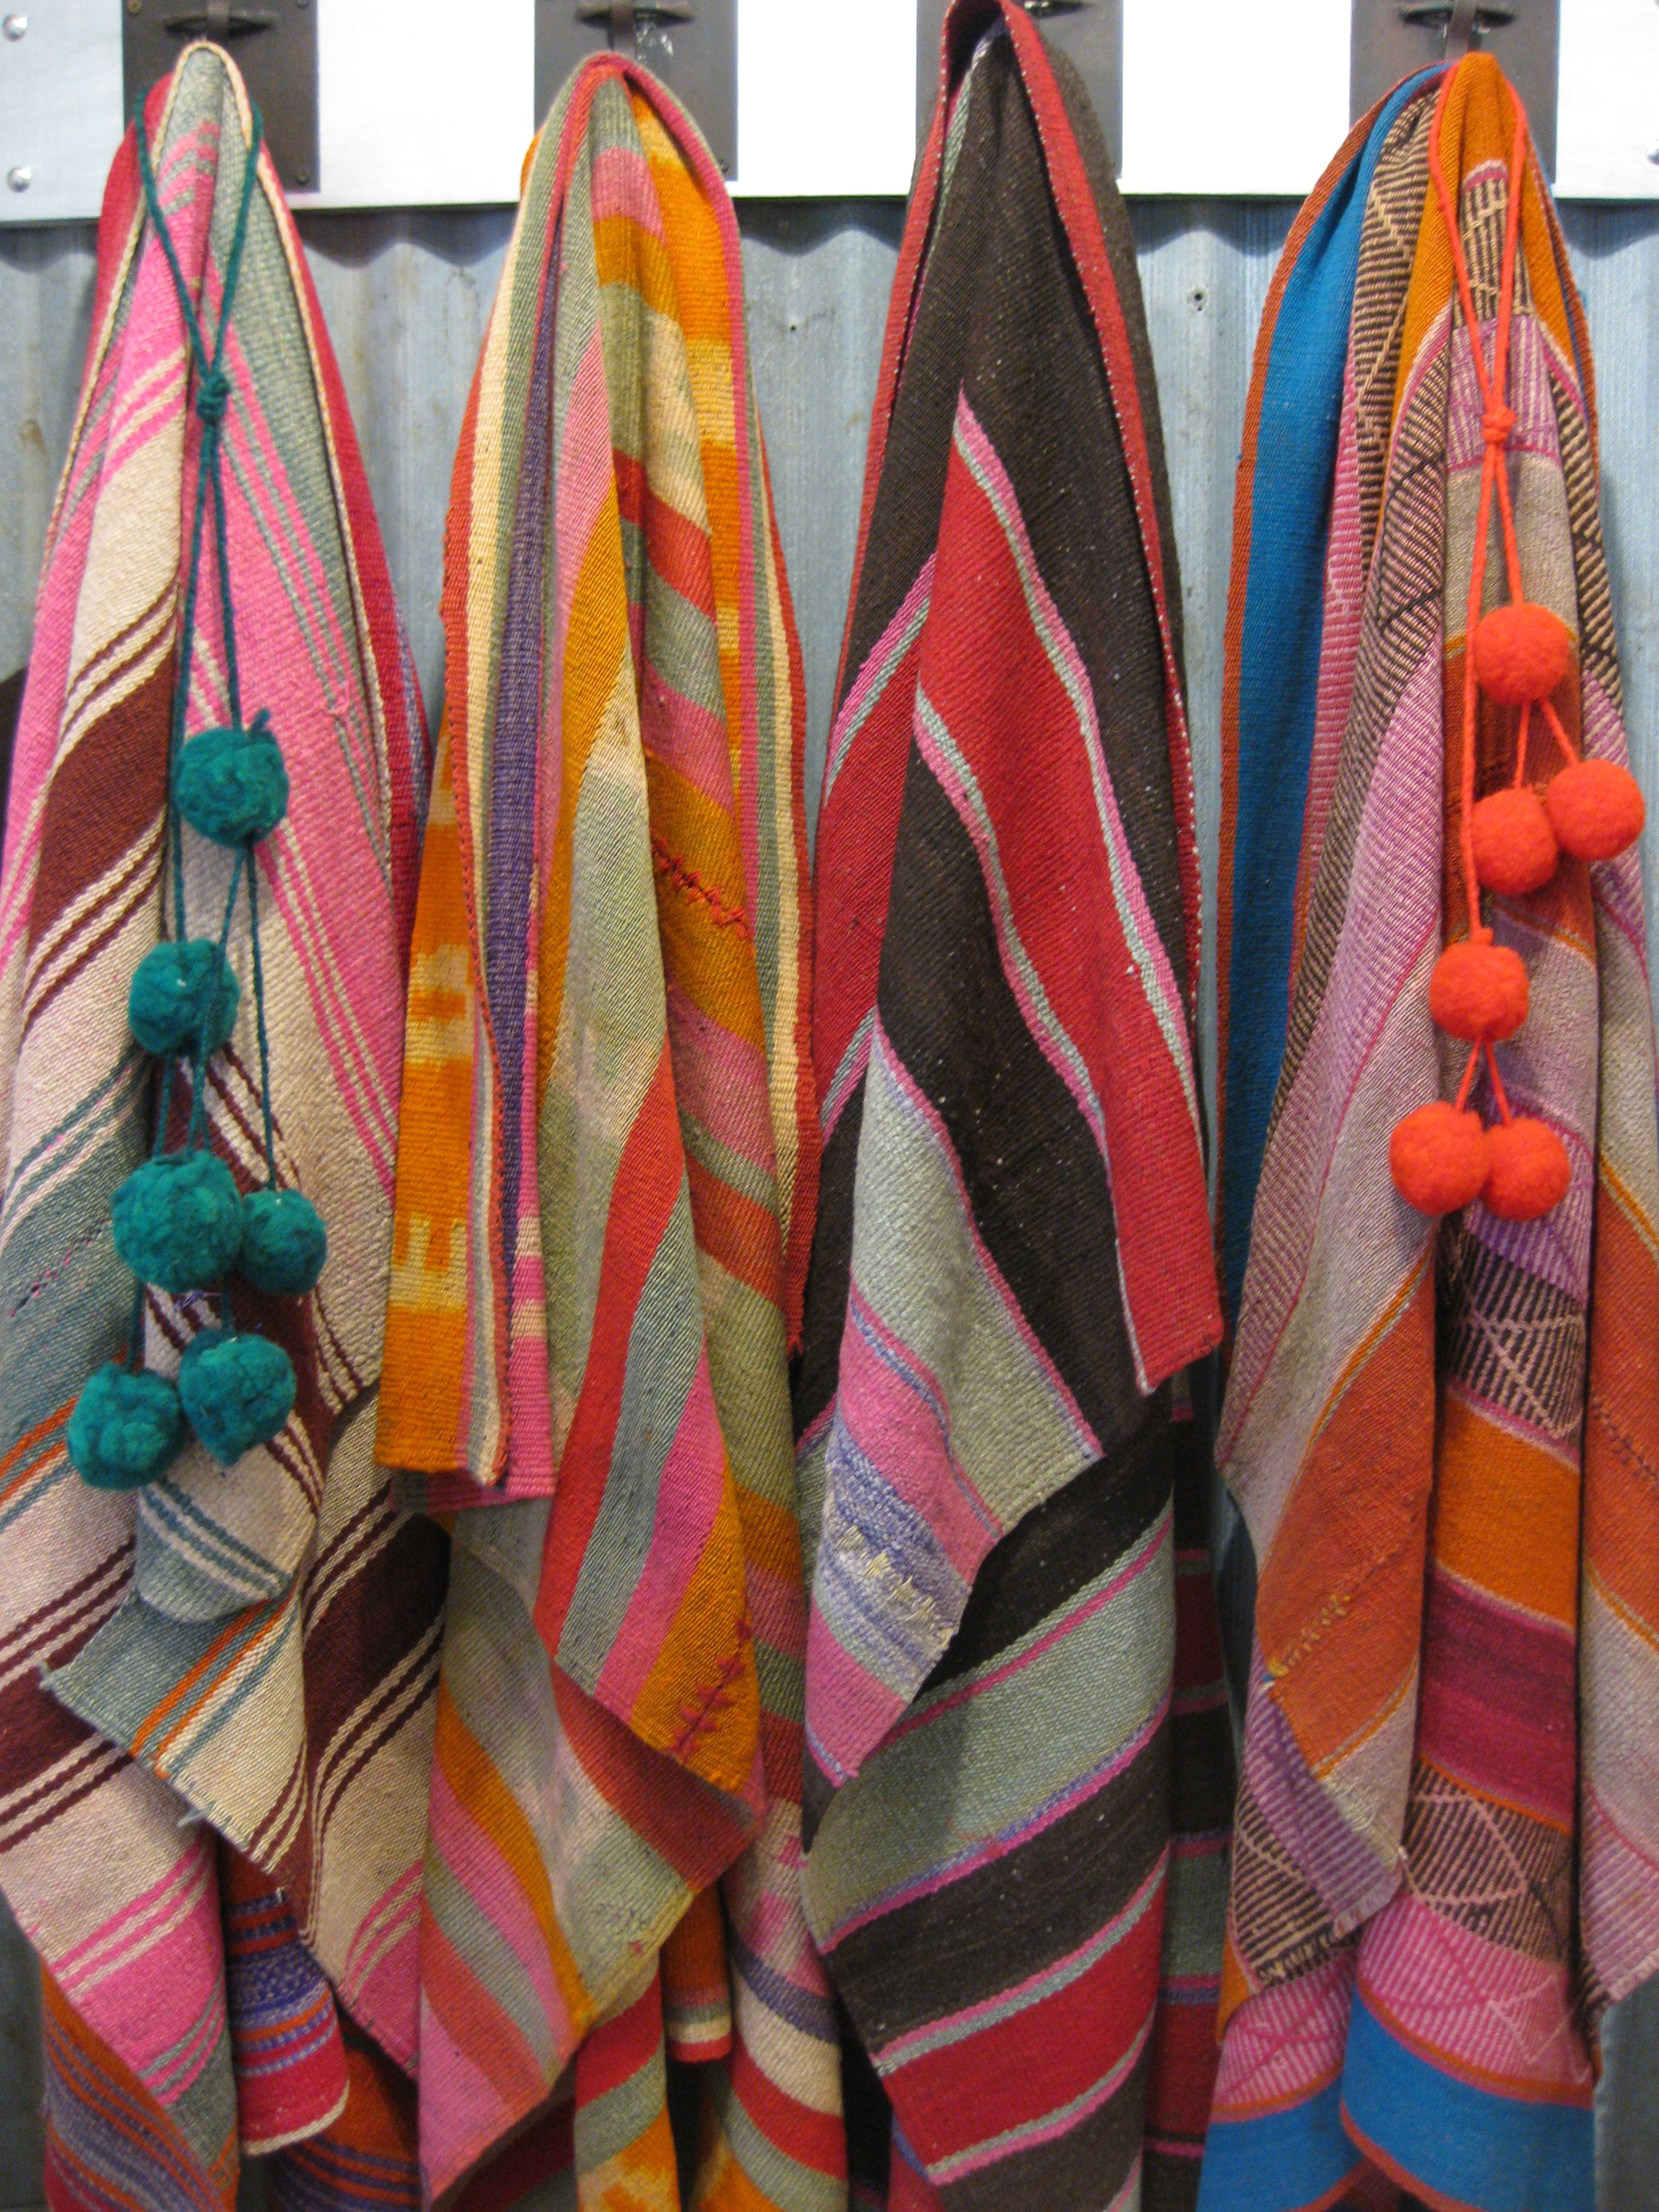 Vintage Textiles from the north of Argentina, Boli